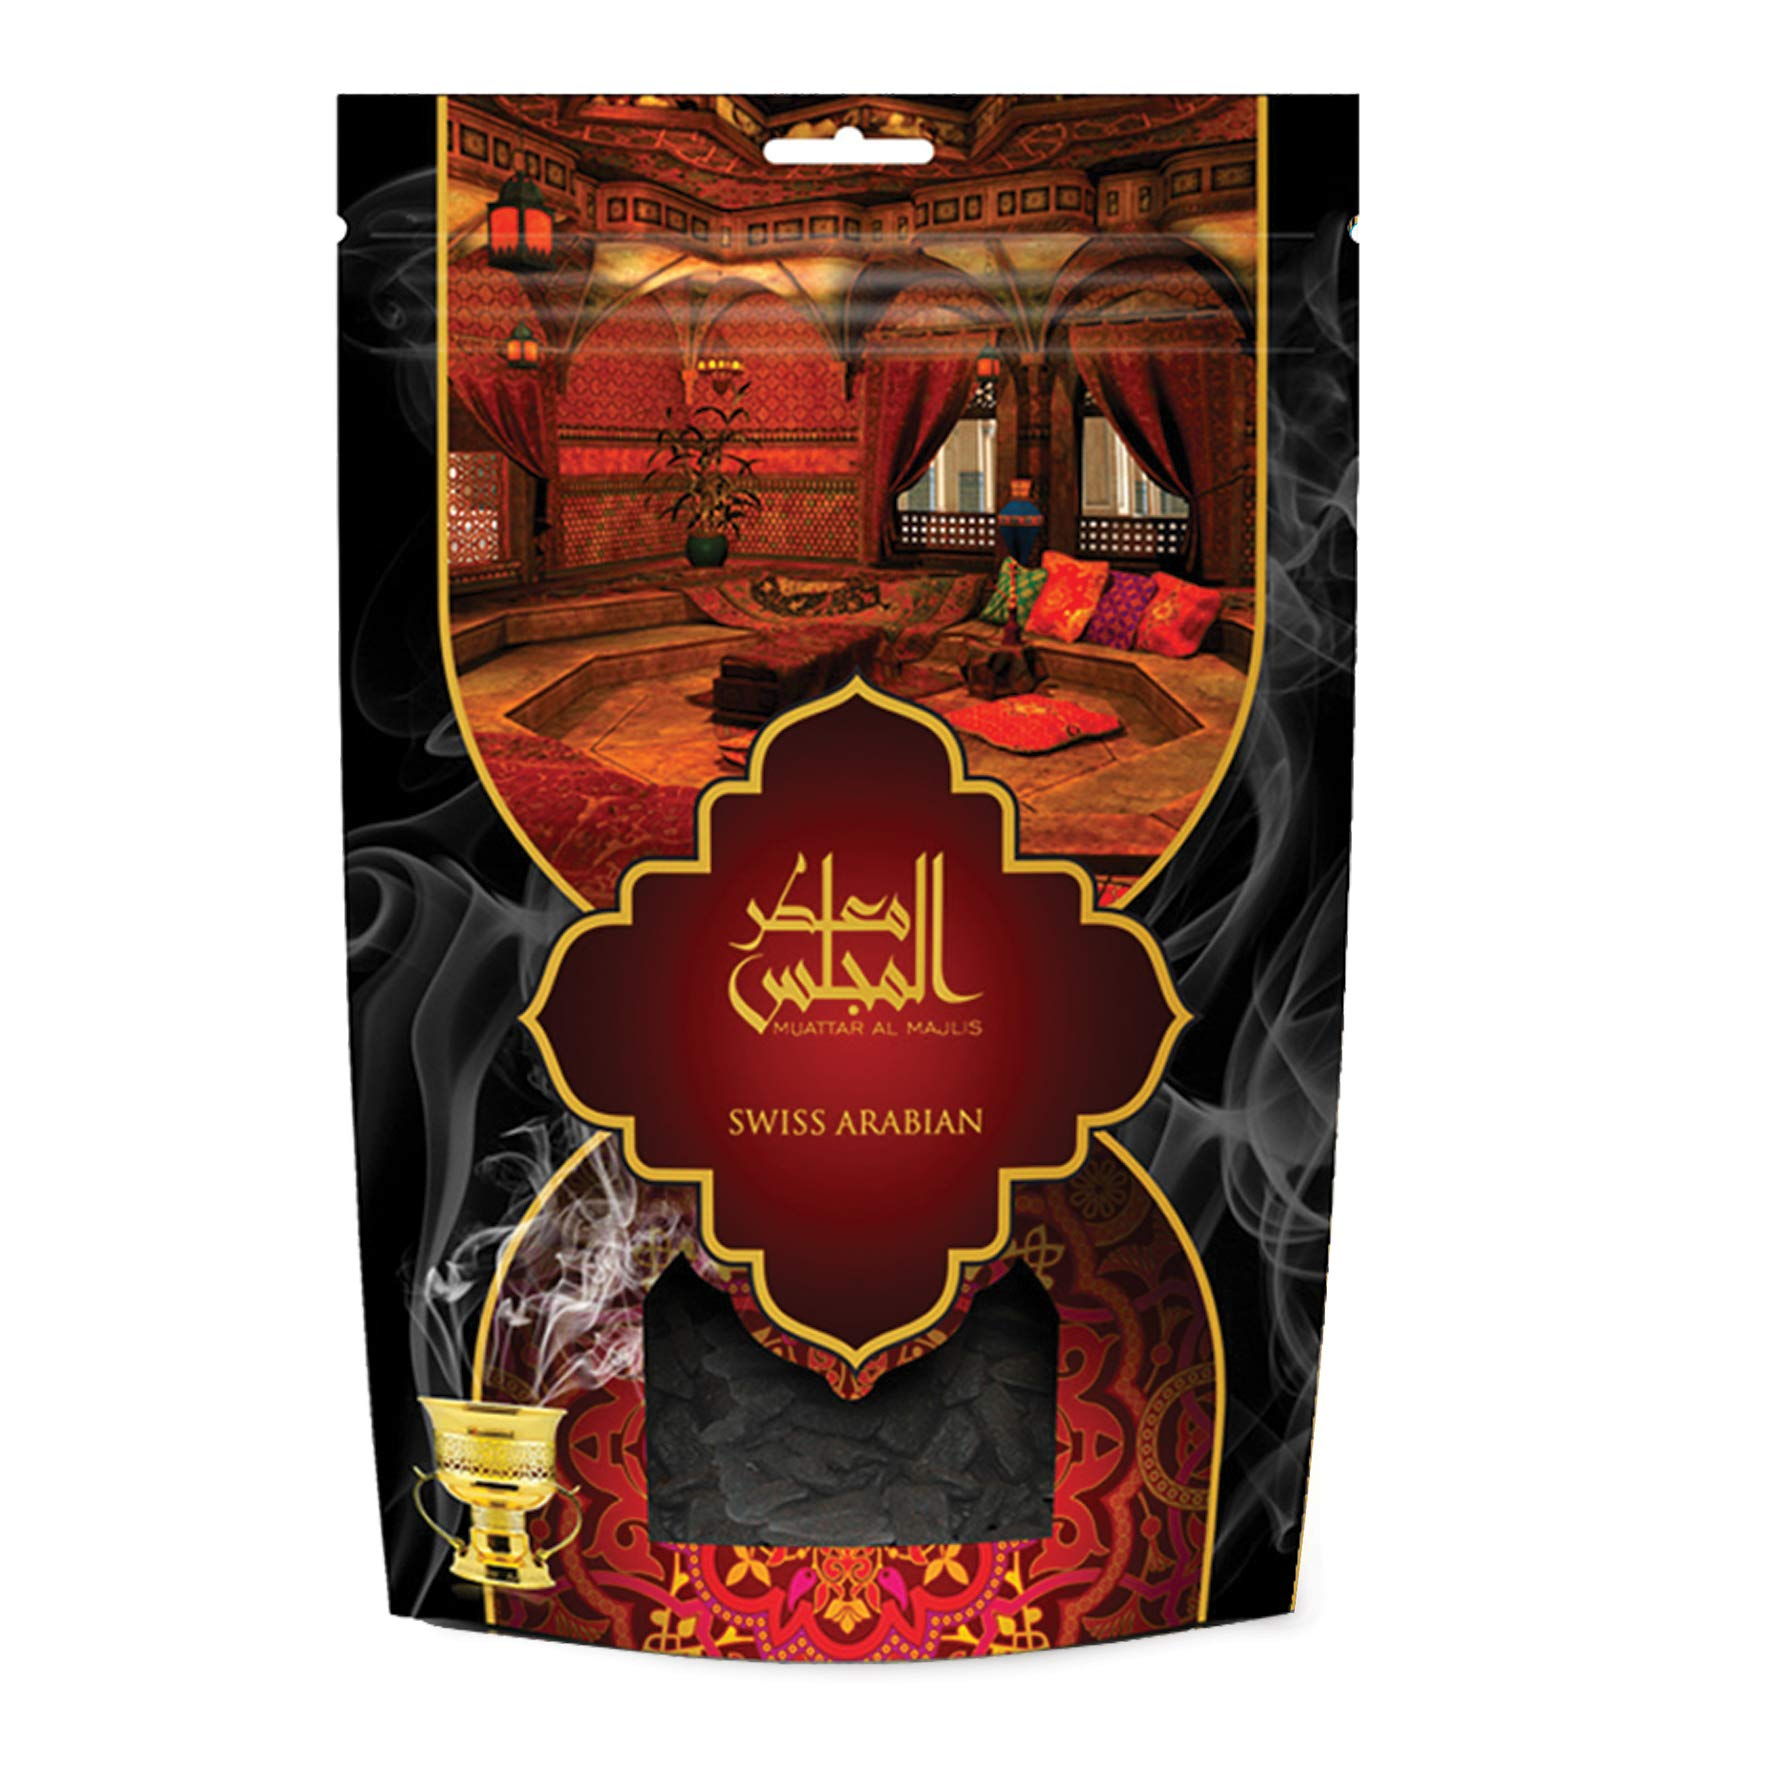 Muattar Al Majlis (250g/.55 lb) Oudh Wood Bakhoor Incense | Scented Exotic Arabic Bukhoor | Use with Traditional Middle Eastern Charcoal/Electric Burner | by Oud Perfume Artisan Swiss Arabian by SWISSARABIAN